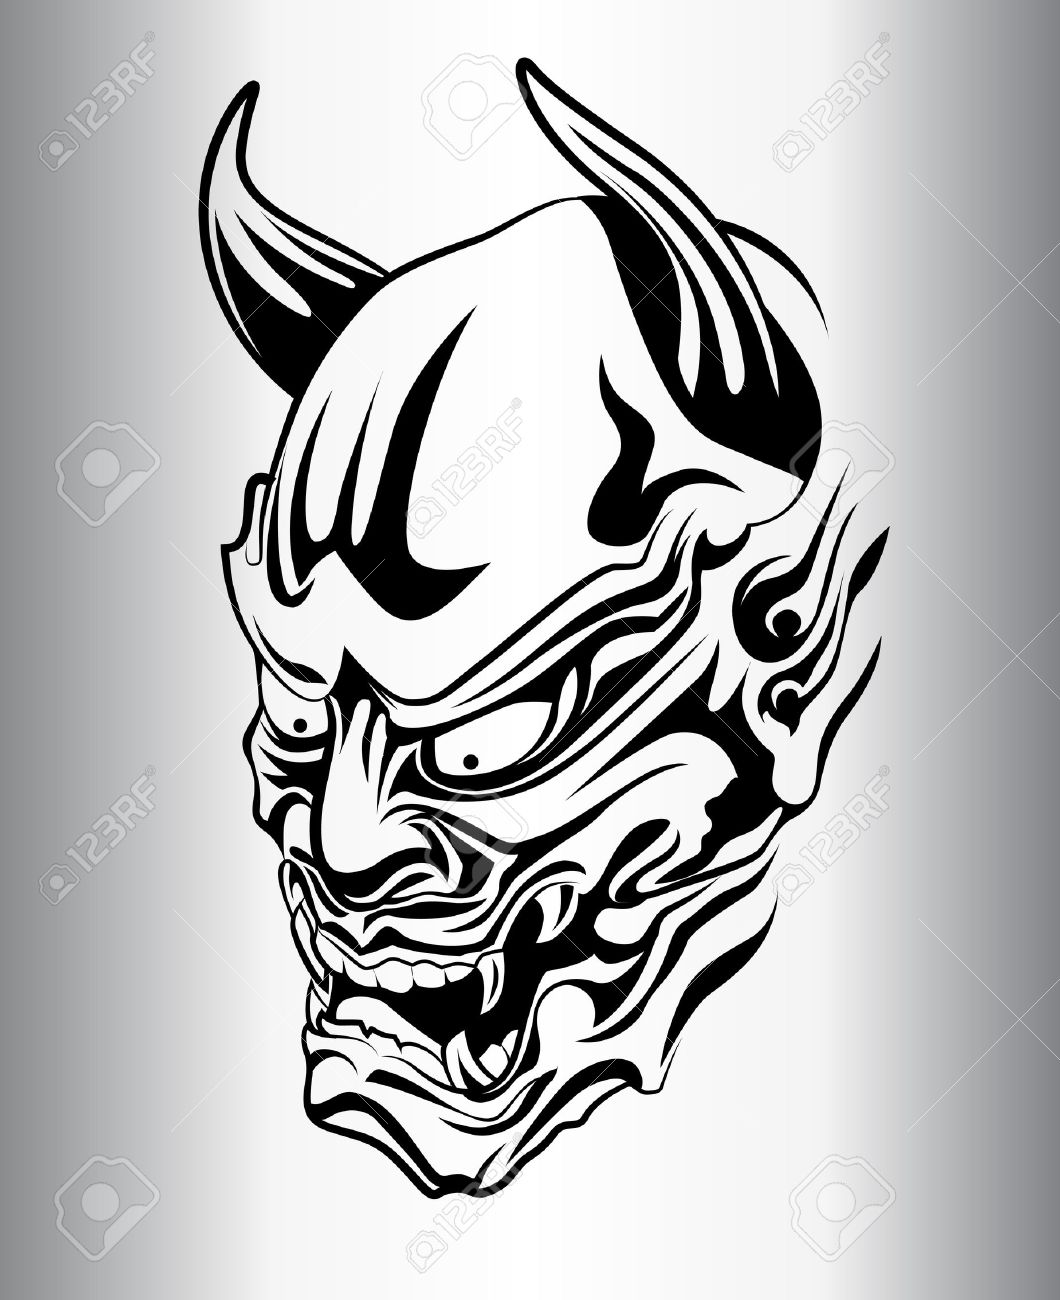 1060x1300 Japanese Demon Tattoo Drawings